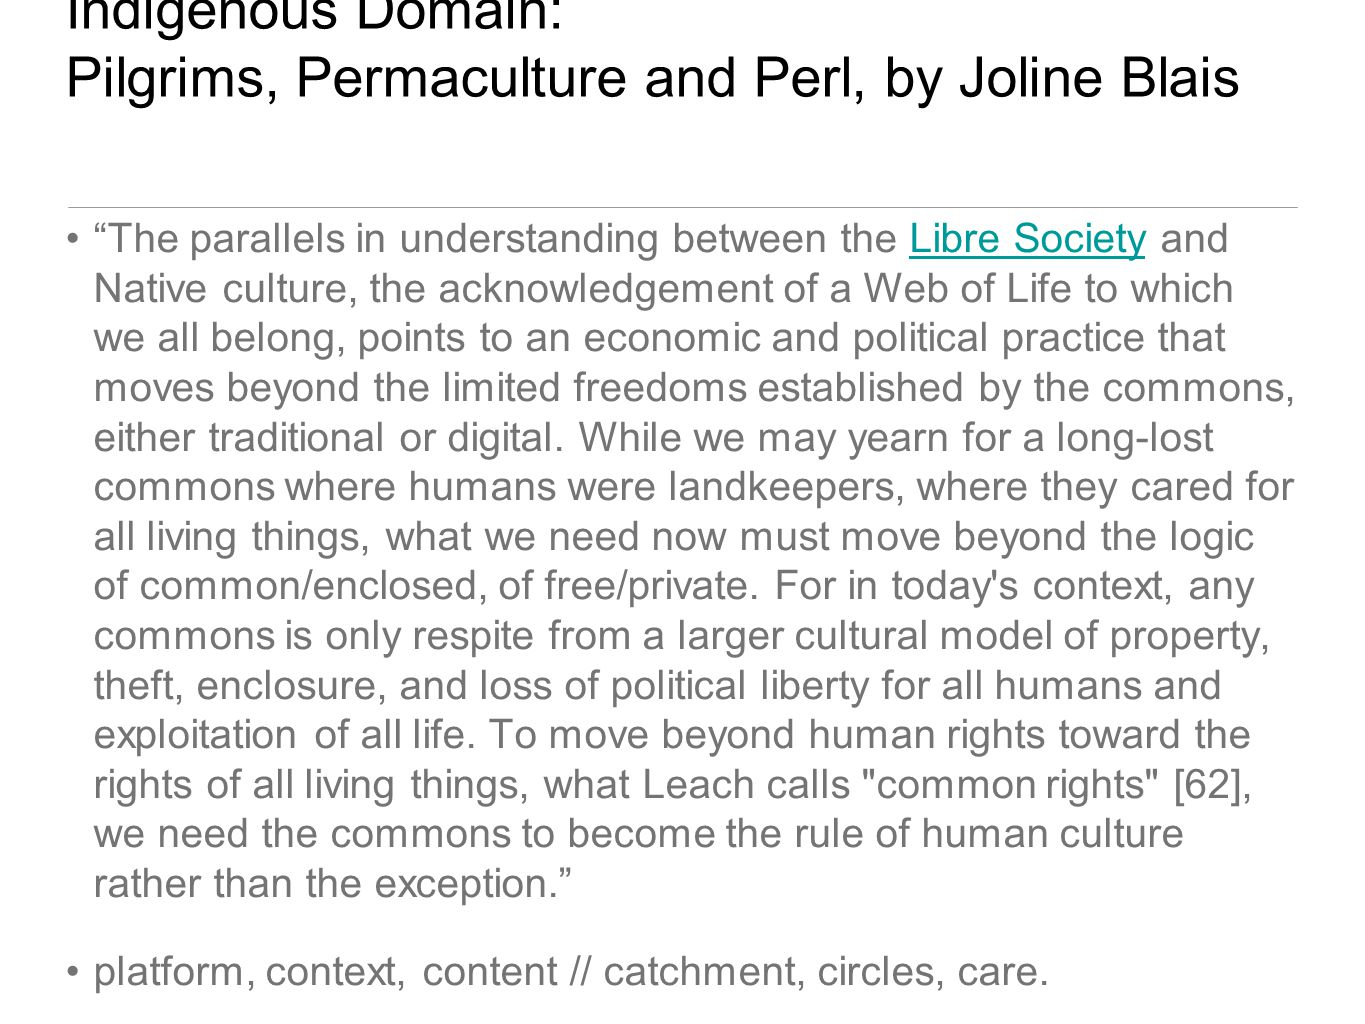 "Indigenous Domain: Pilgrims, Permaculture and Perl, by Joline Blais ""The parallels in understanding between the Libre Society and Native culture, the"